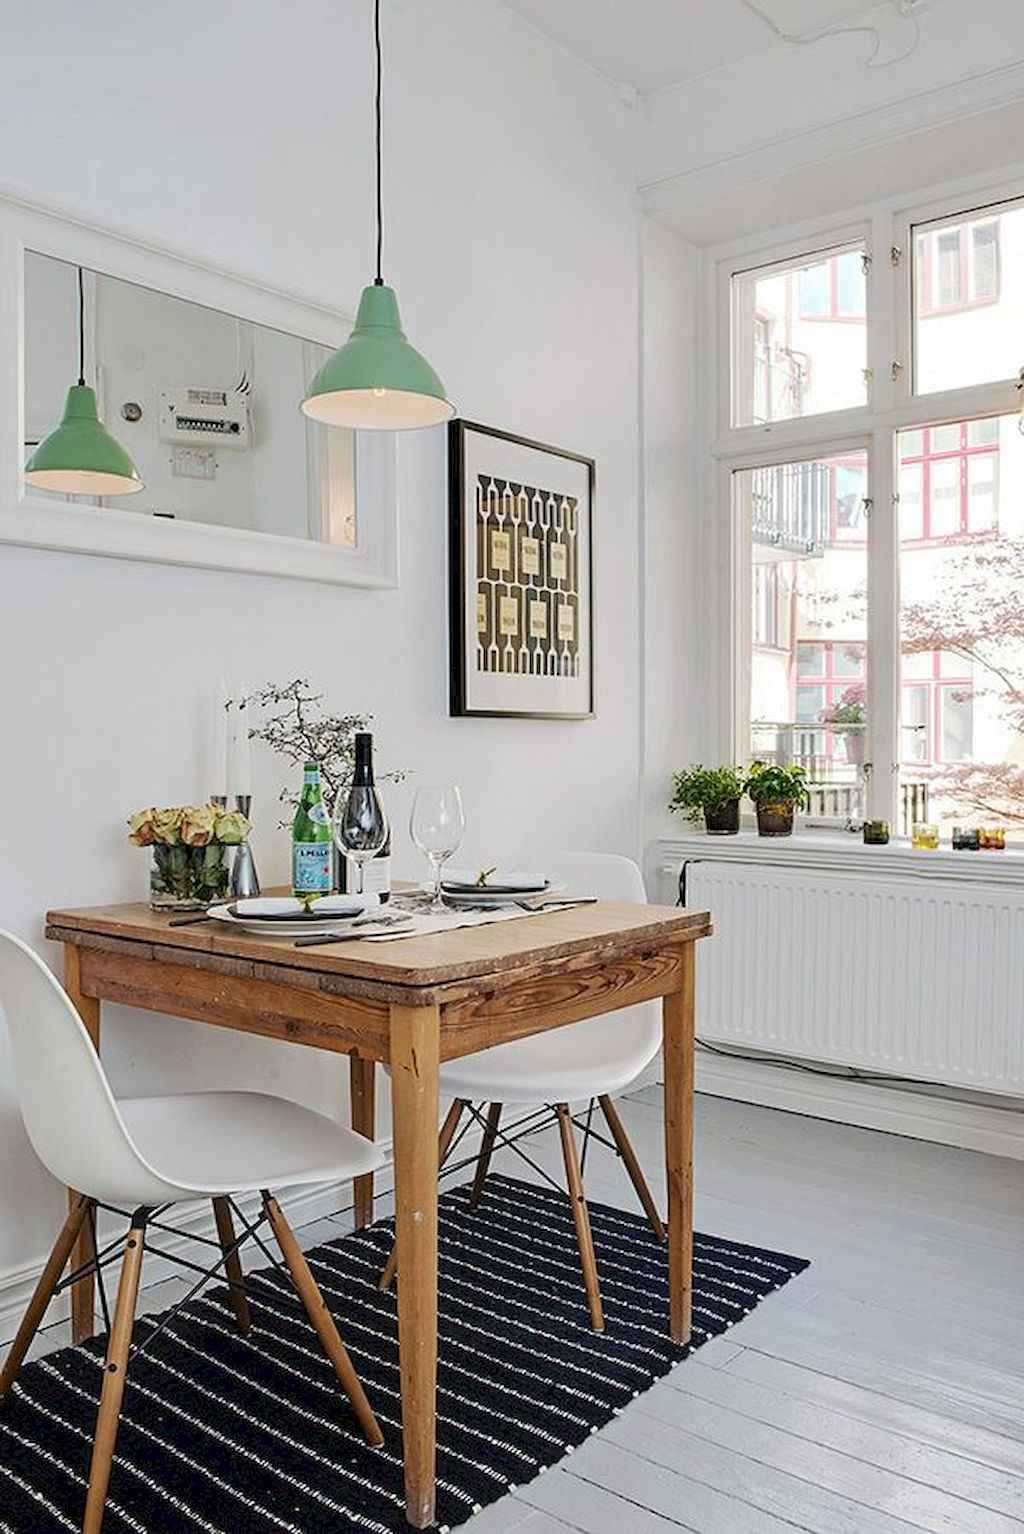 Cozy apartment decorating ideas on a budget (61)